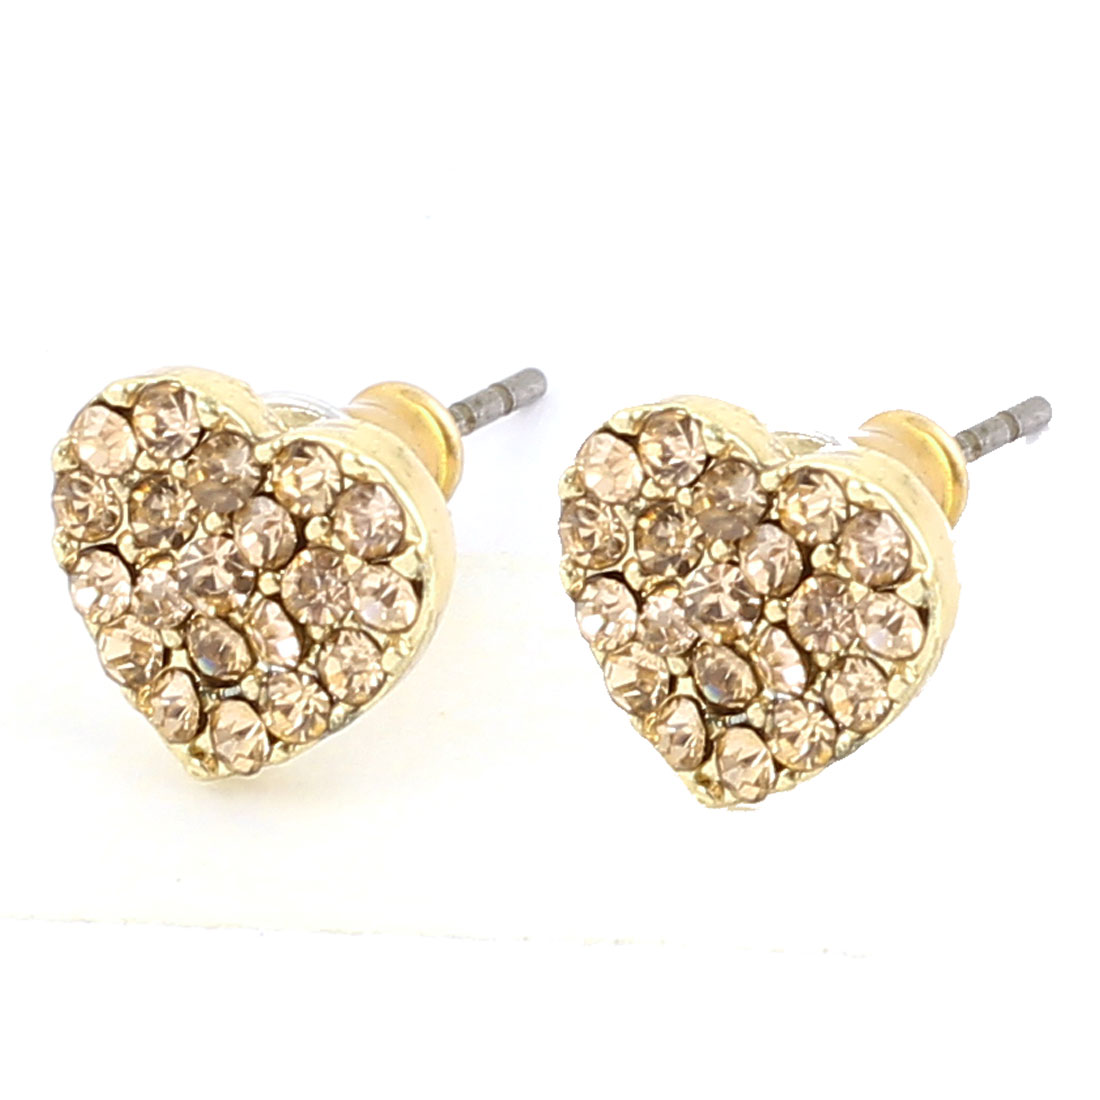 1.5cm Length Copper Tone Metal Heart Shape Plastic Rhinestones Inlaid Pierced Stud Pin Ear Nail Earrings Earbobs Pair for Lady Women